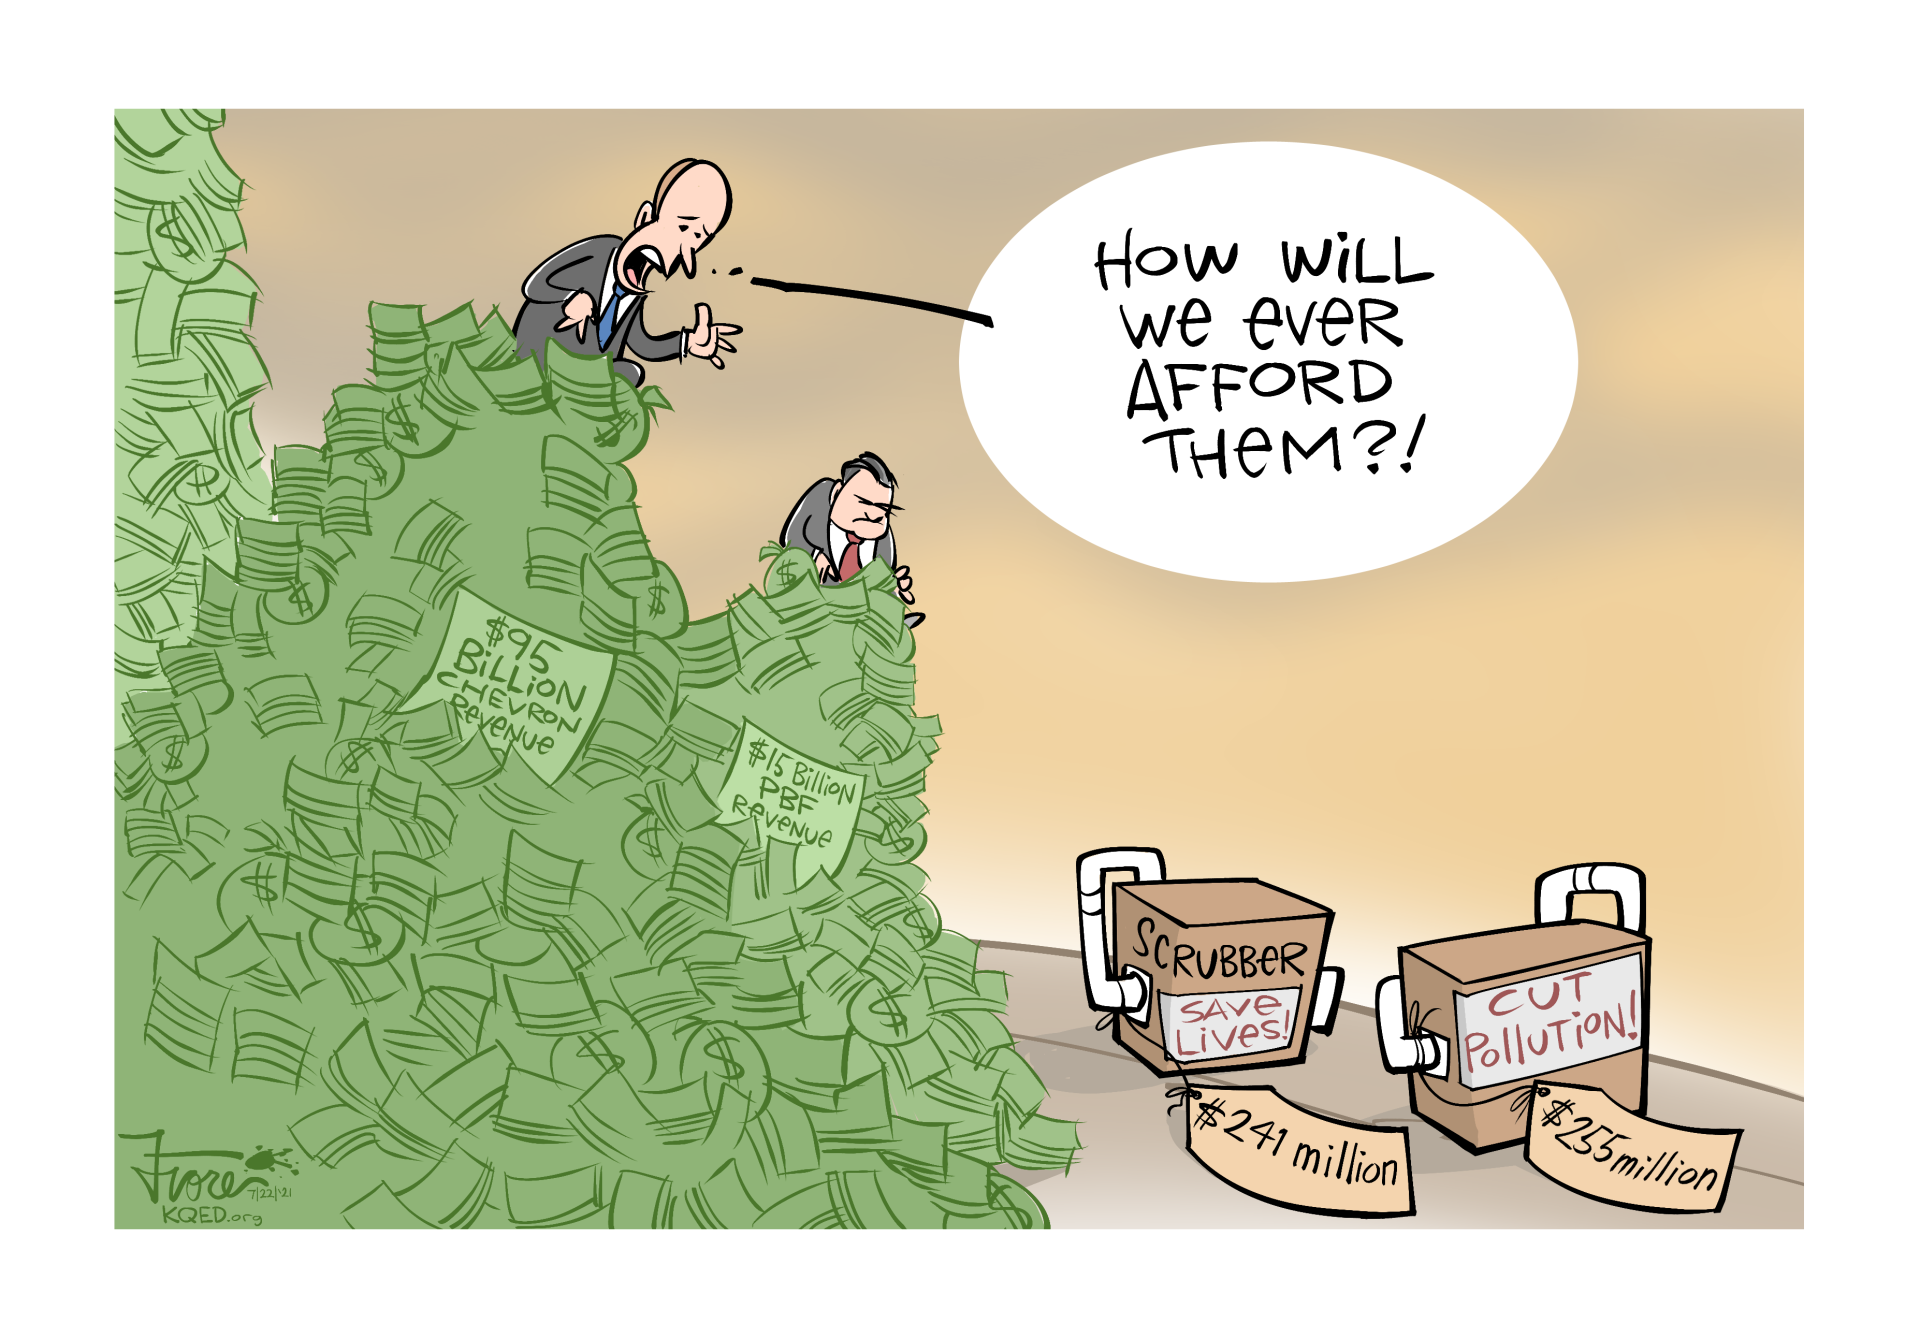 """A Mark Fiore cartoon showing the CEOs of Chevron and PBF Energy atop billions of dollars while they look at air pollution devices that cost around $250 million. The Chevron CEO says, """"how will we ever afford them?"""""""